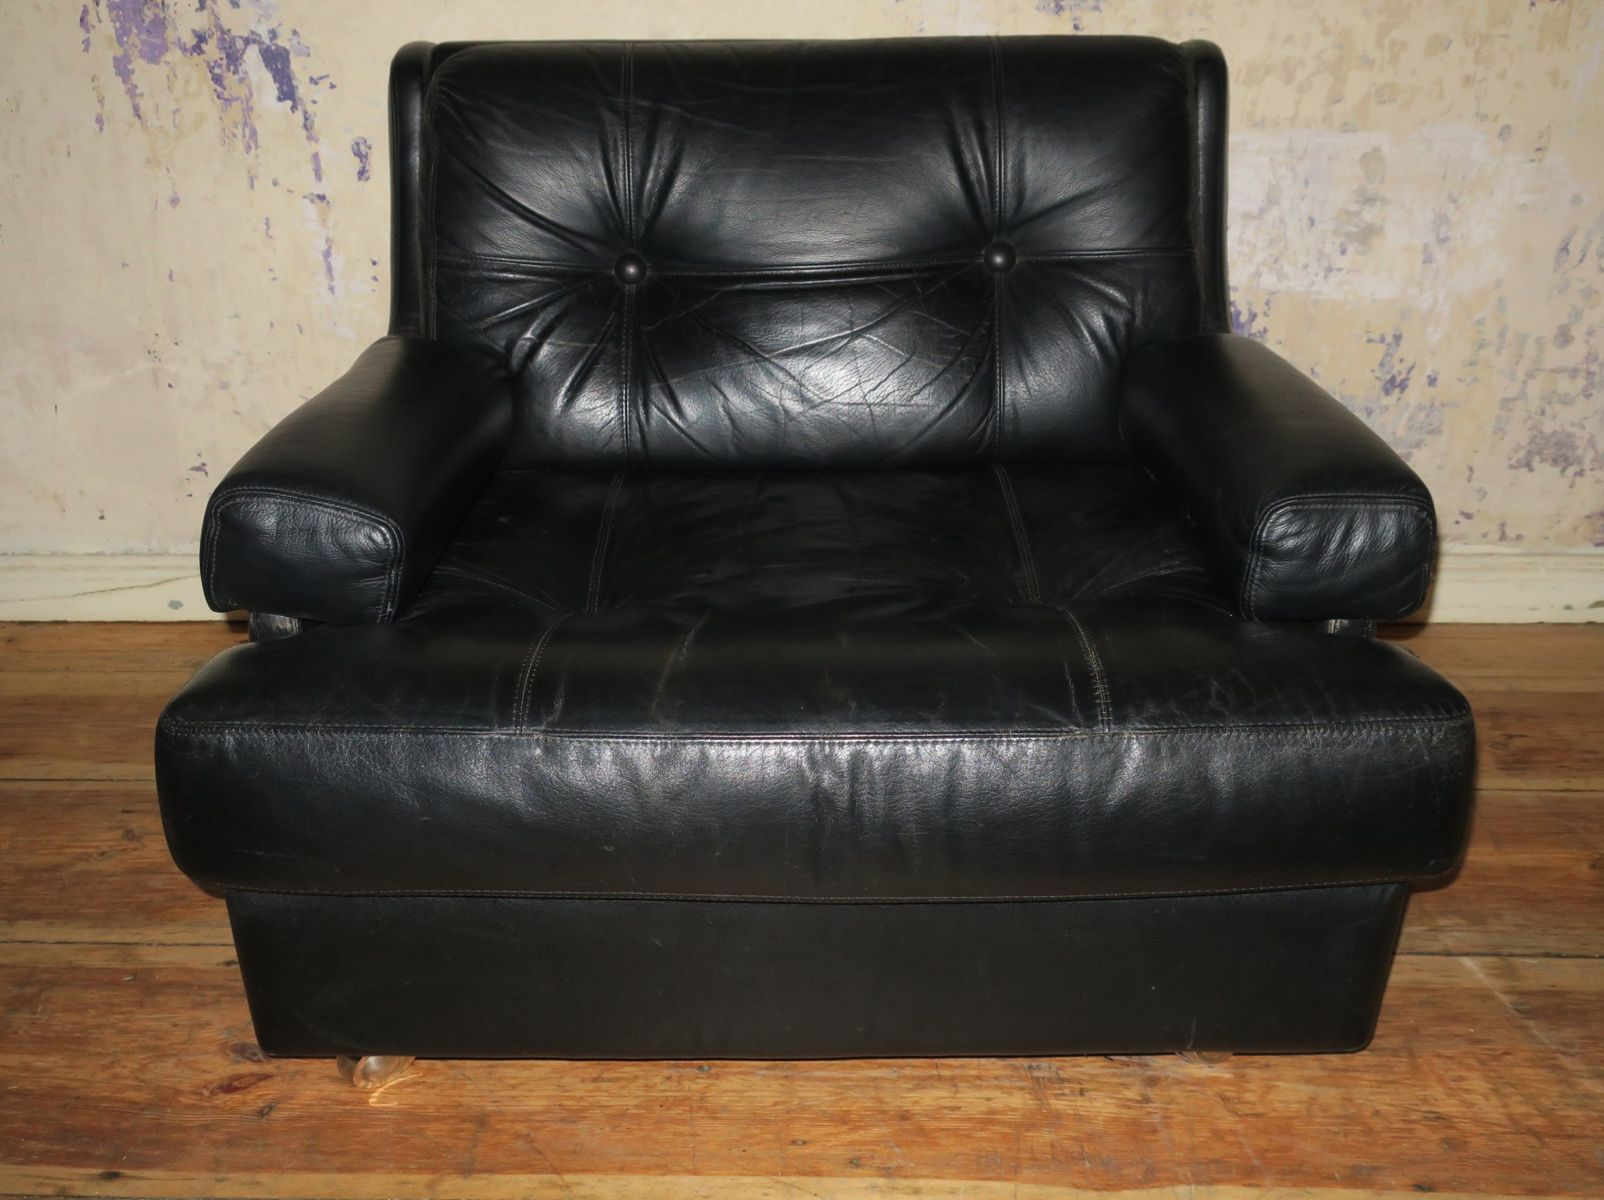 Black Leather Lounge Chair Black Leather Lounge Chair From Dux 1960s